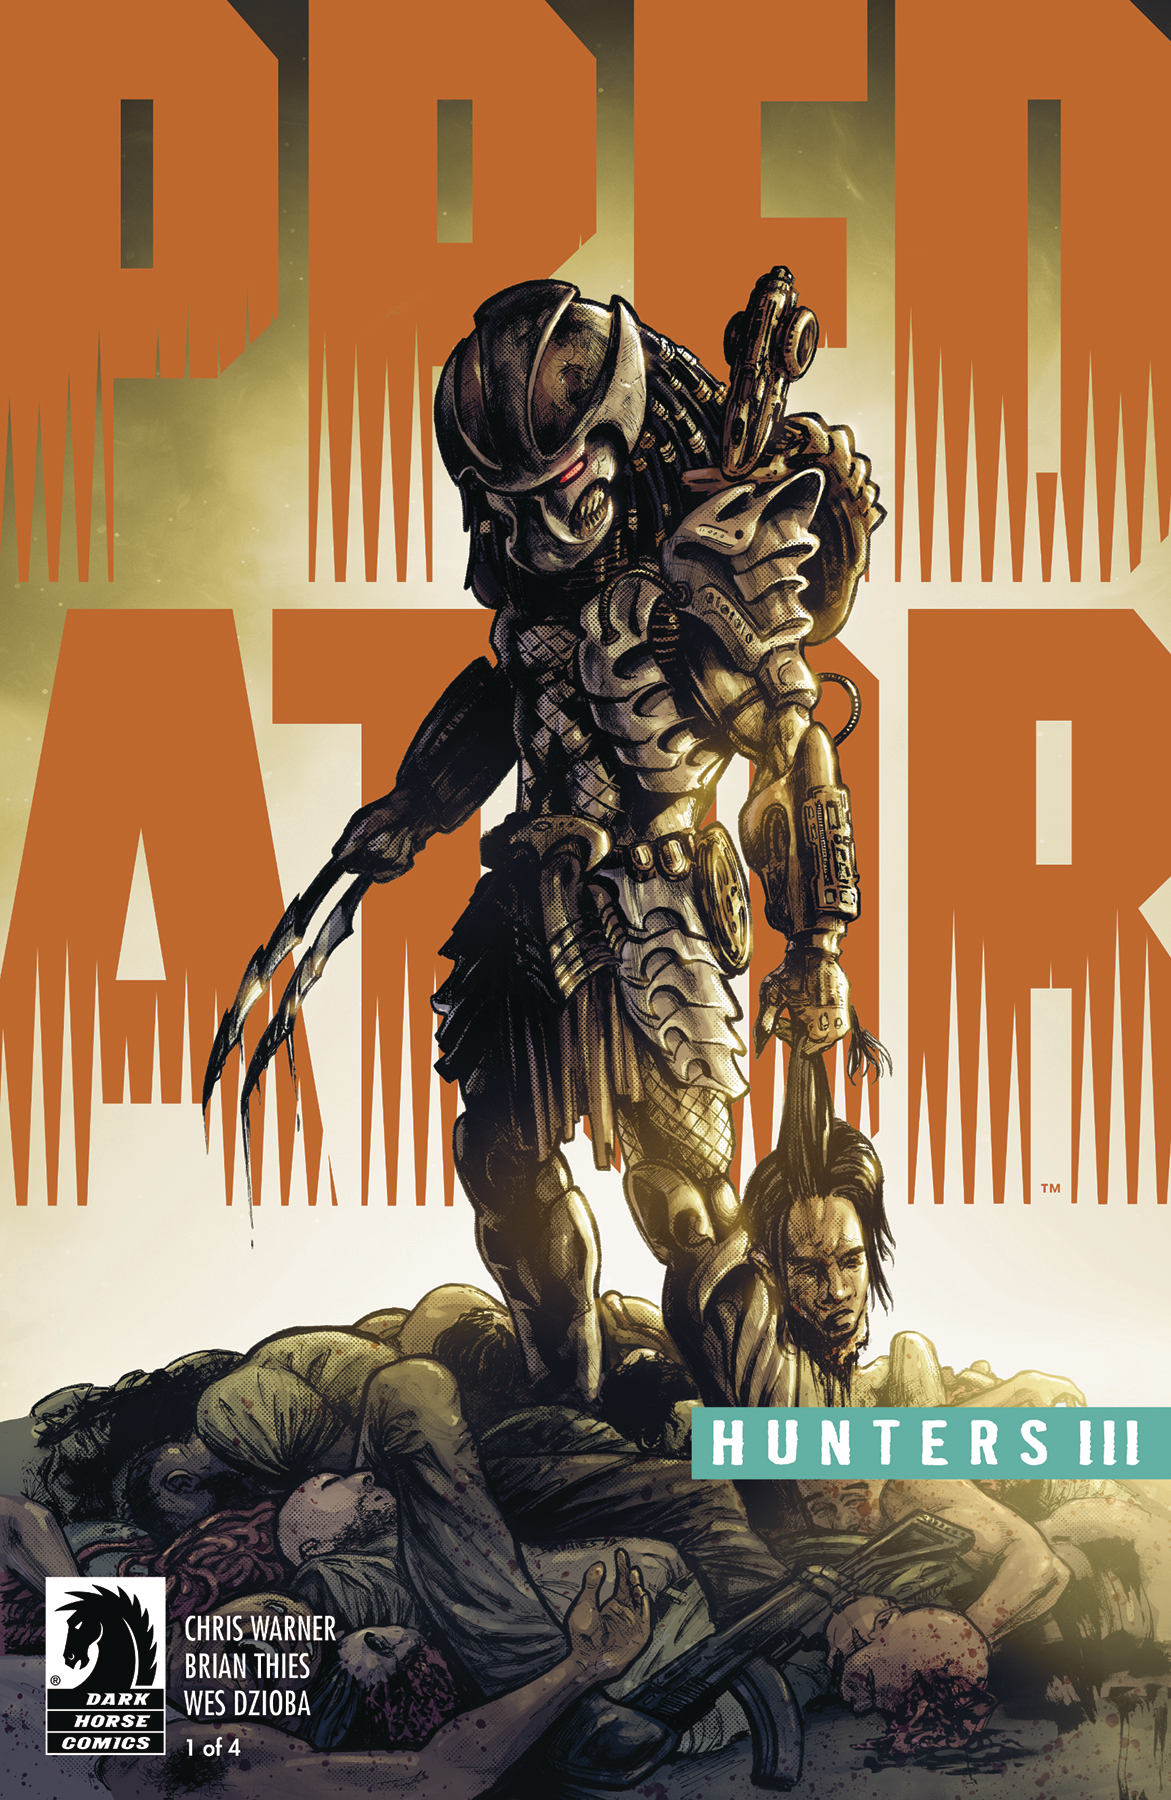 PREDATOR HUNTERS III #1 (OF 4) CVR A THIES